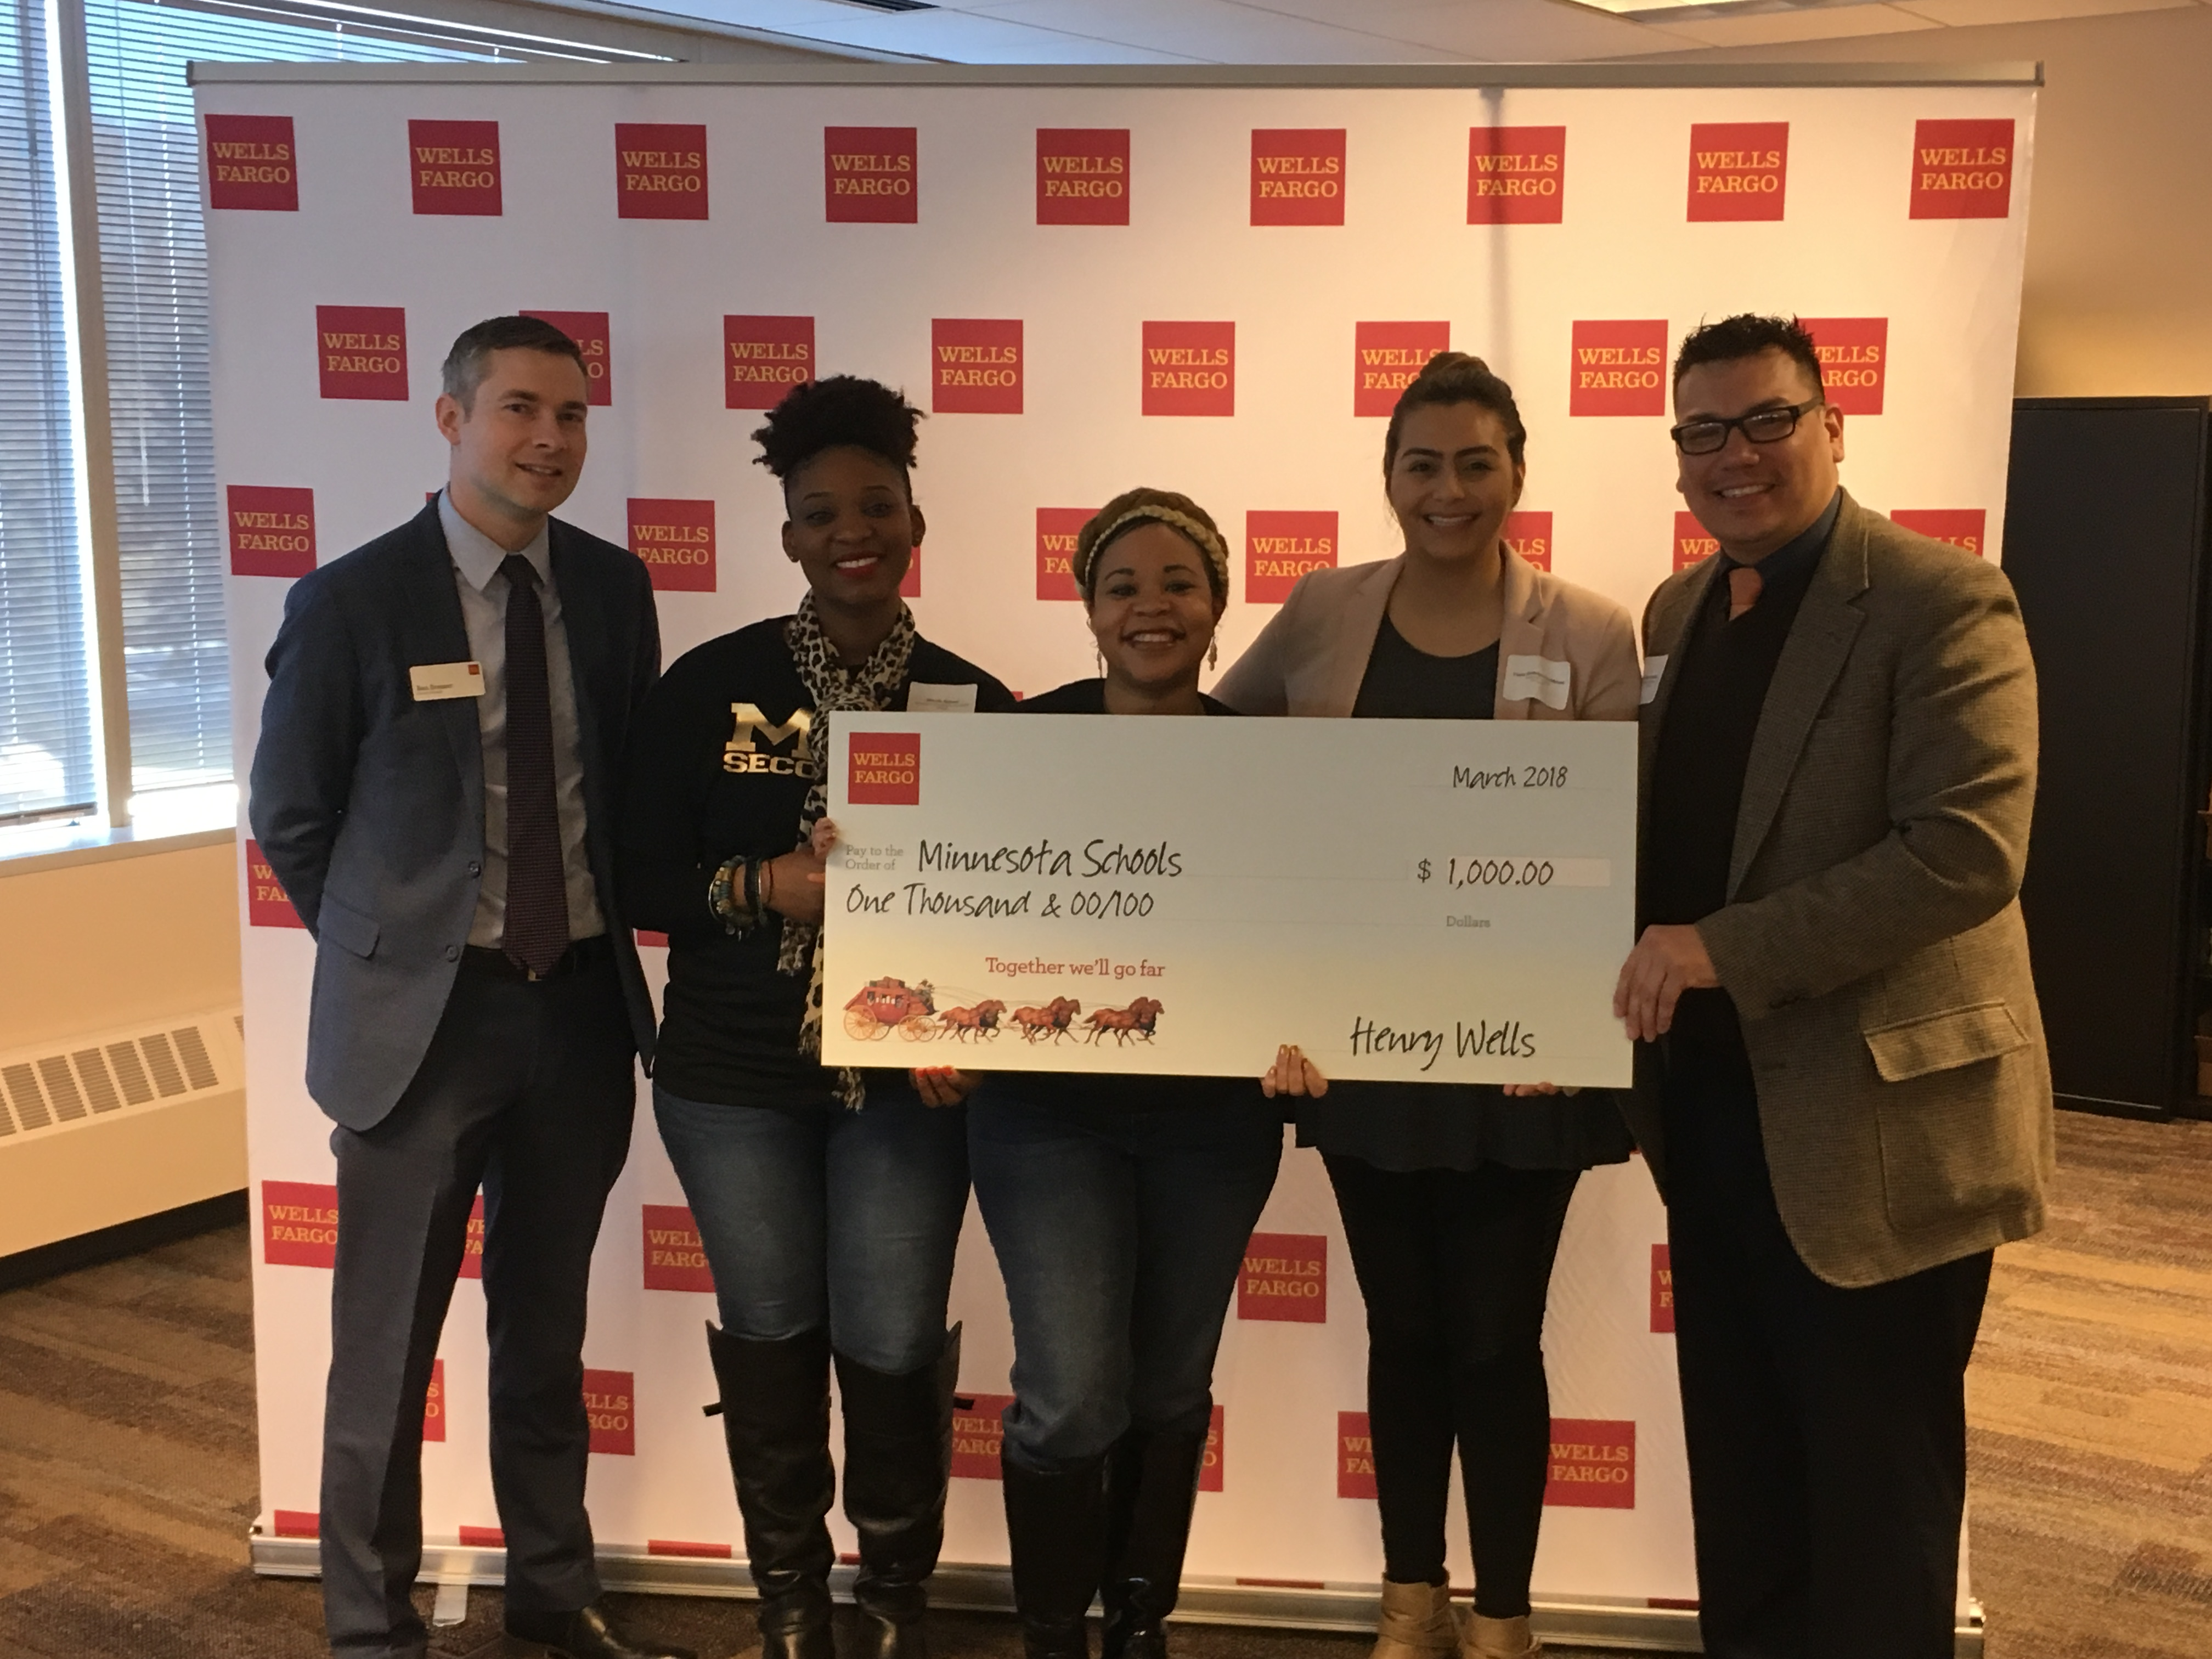 Thank you Wells Fargo for your support of Minnesota Transitions Charter School!